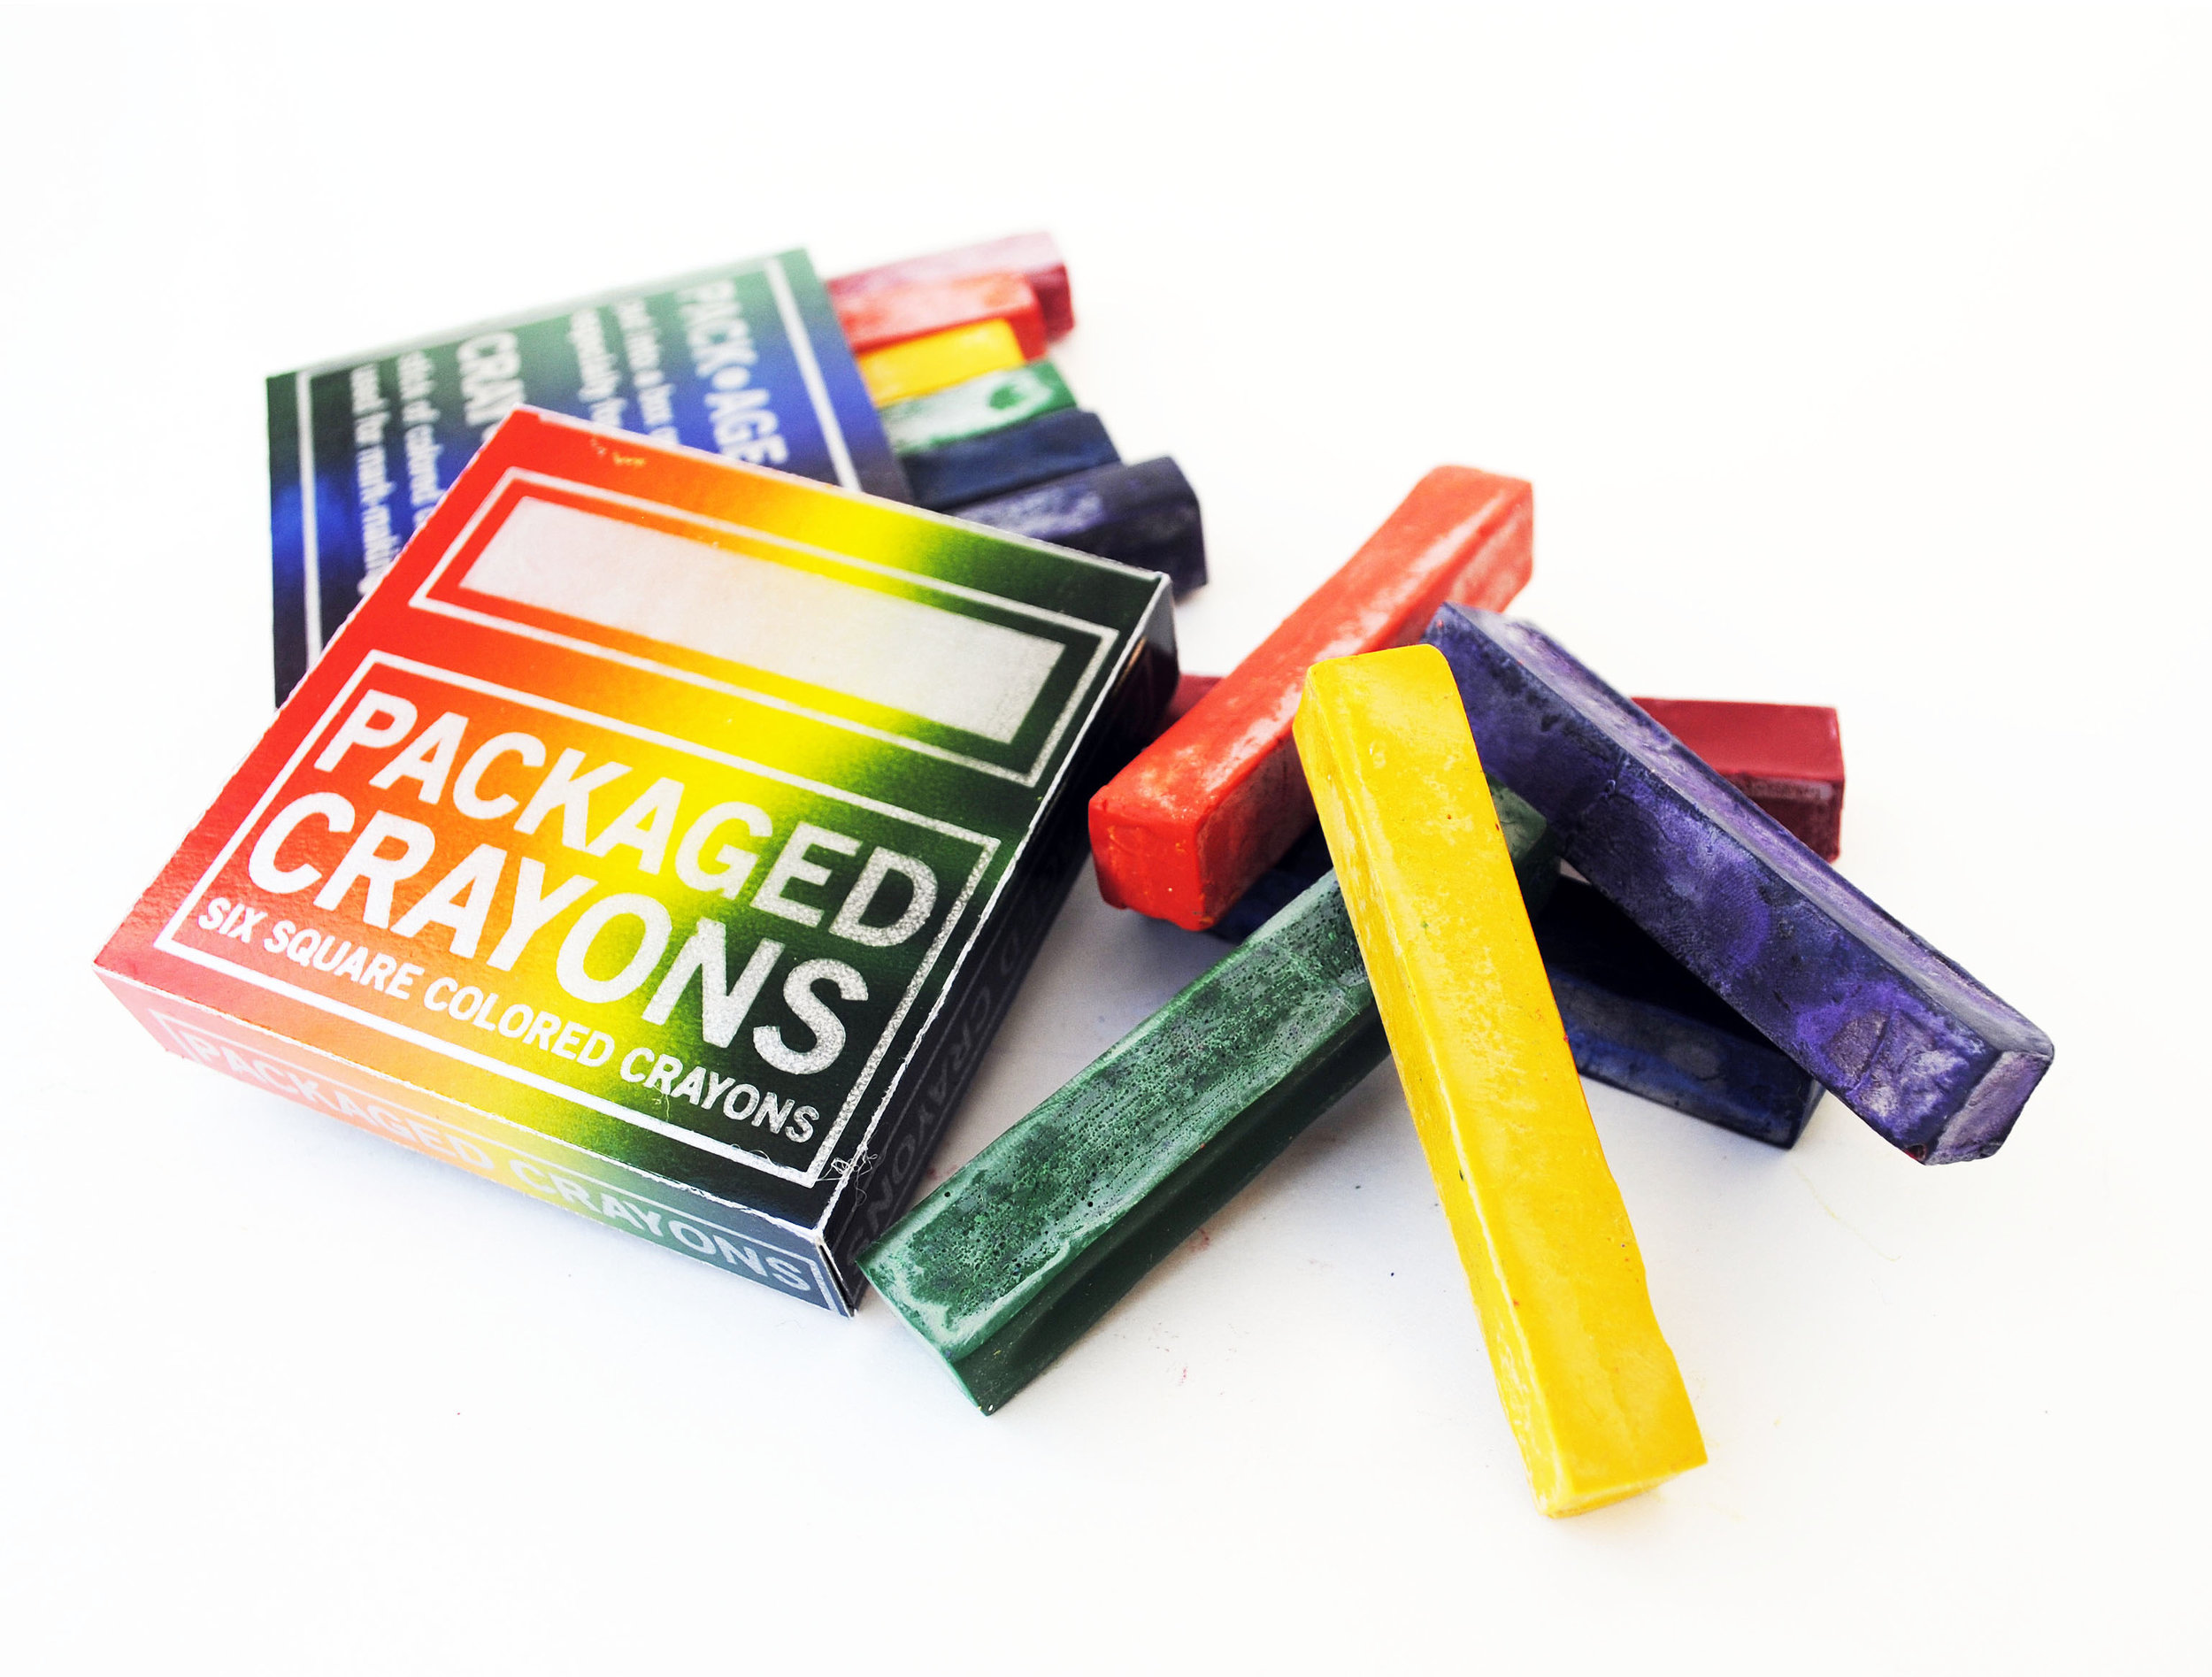 Packaged CRAYONS  , 2016  Letterpress printed boxes & handmade crayons  8 x 5.25 inches